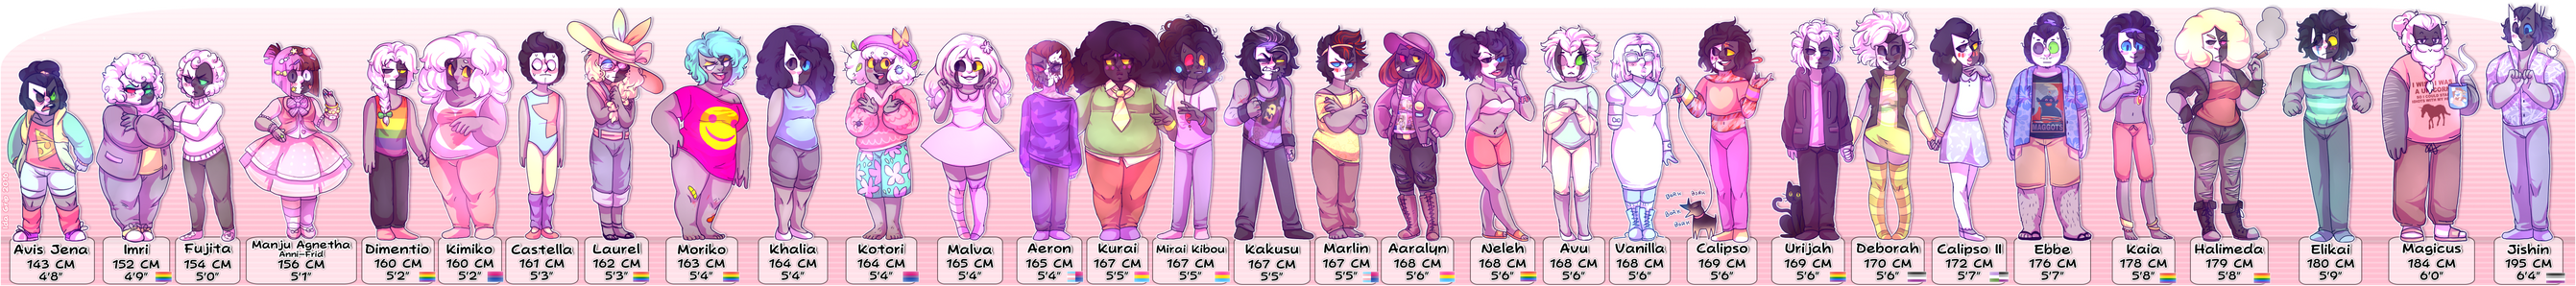 Noface Height Chart by ScreeKeeDee